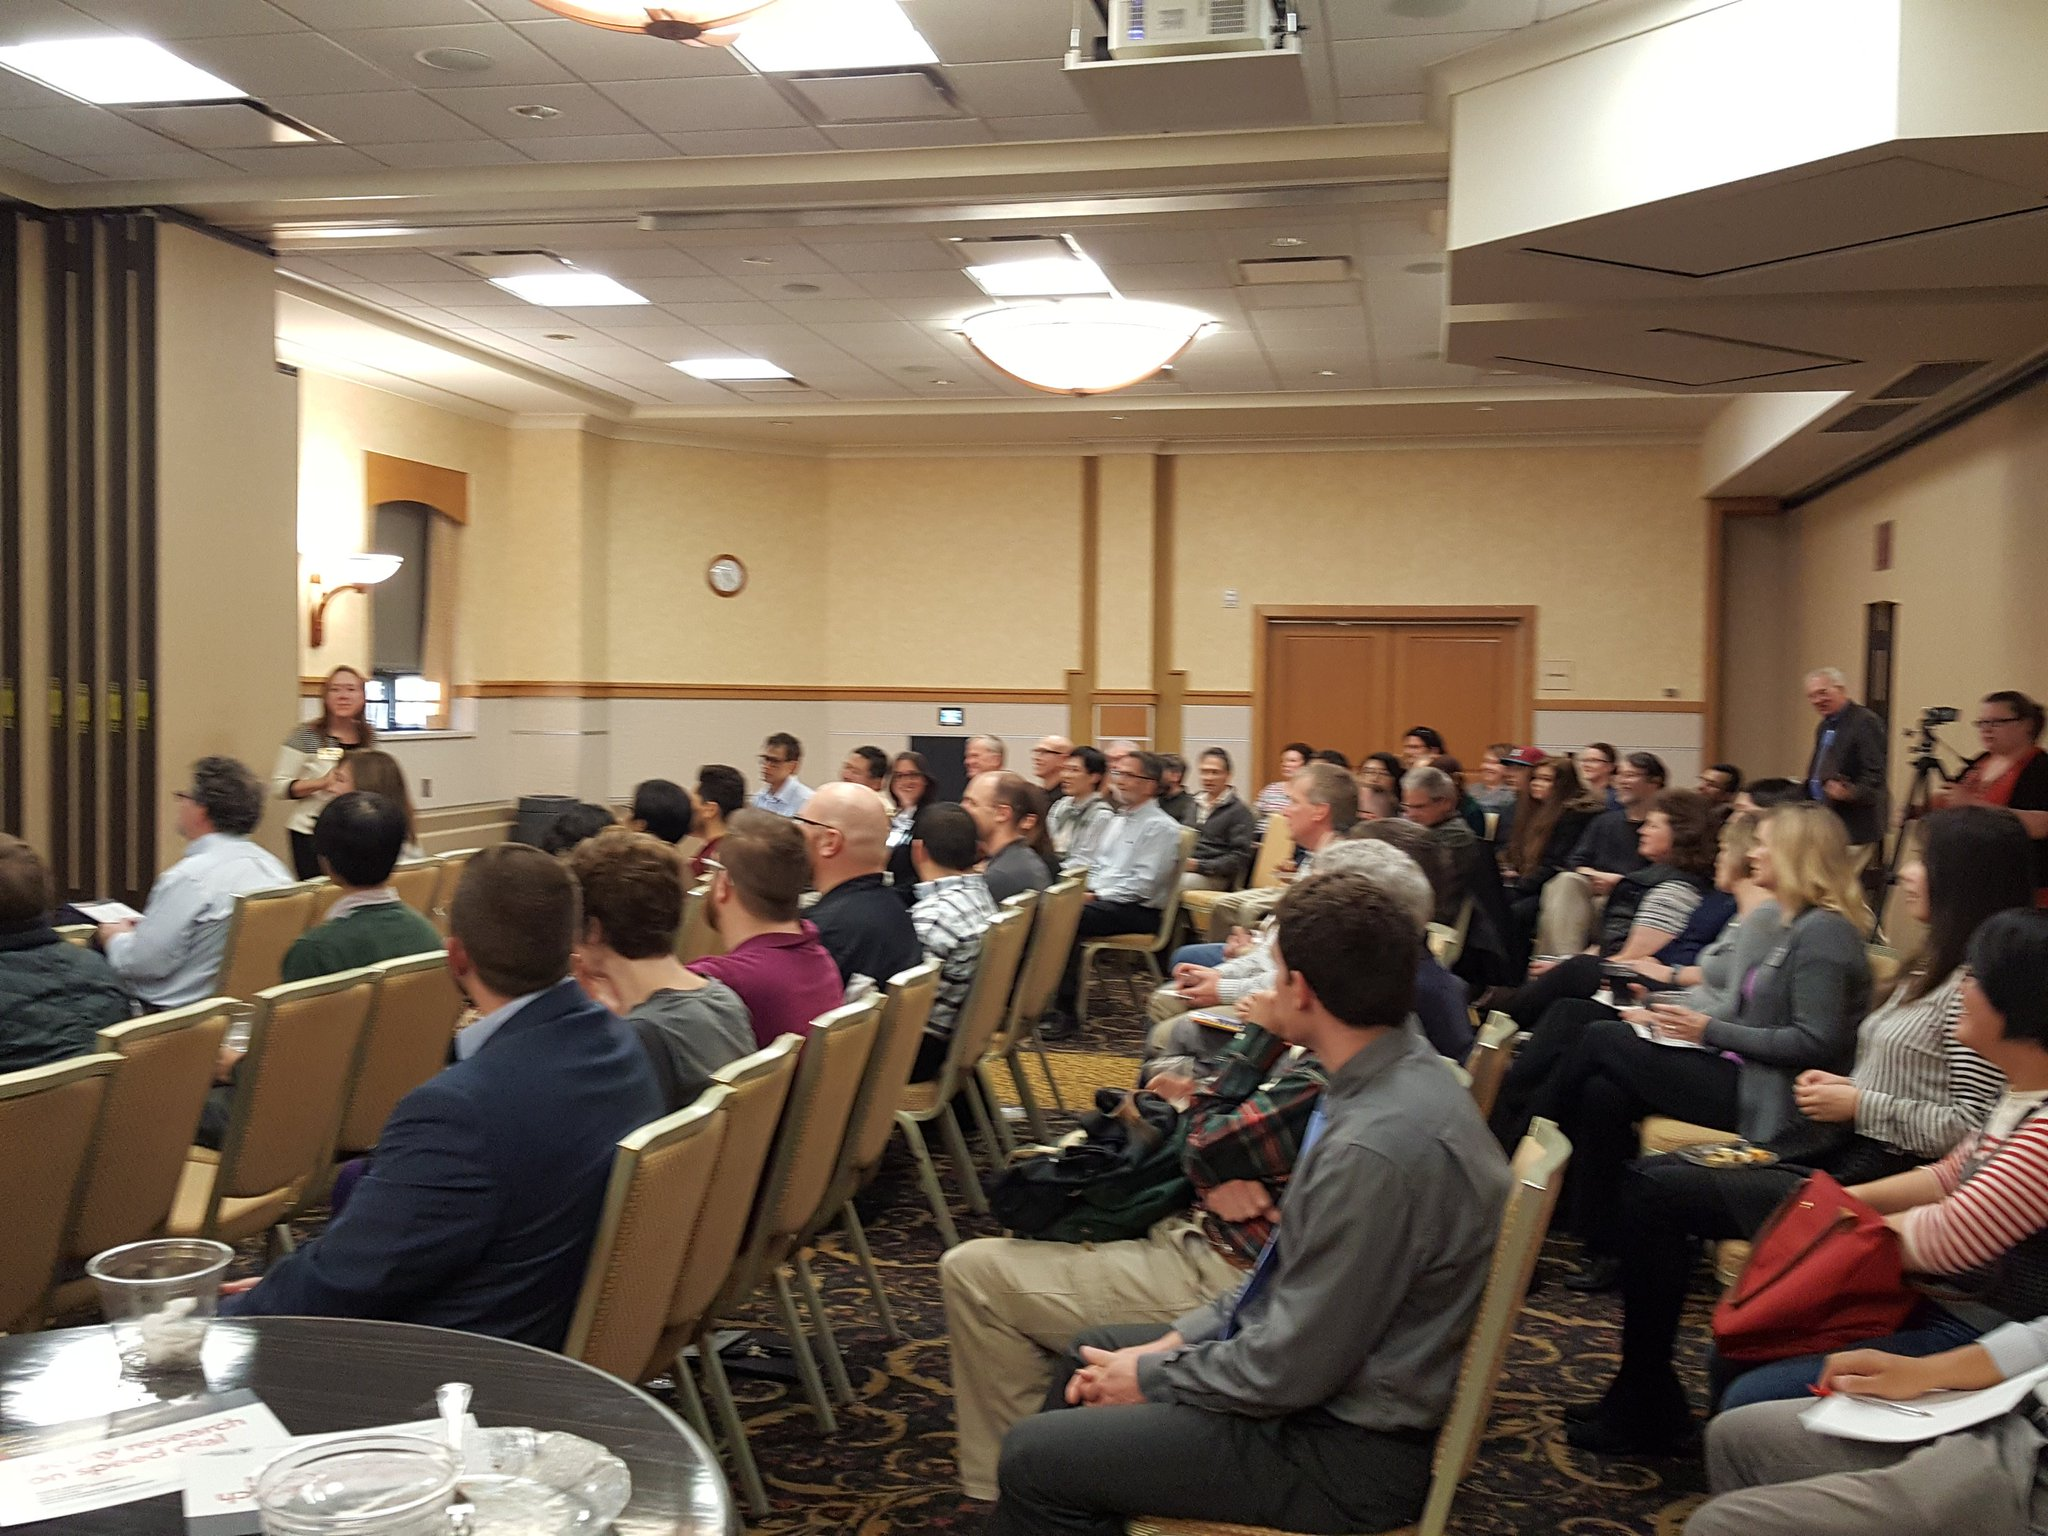 Full house for our first #MTUresearchforum Tech Talks. Two minutes, two slides, 13 faculty. @aminerick kicking it off with opening remarks. https://t.co/agCY7QW55z